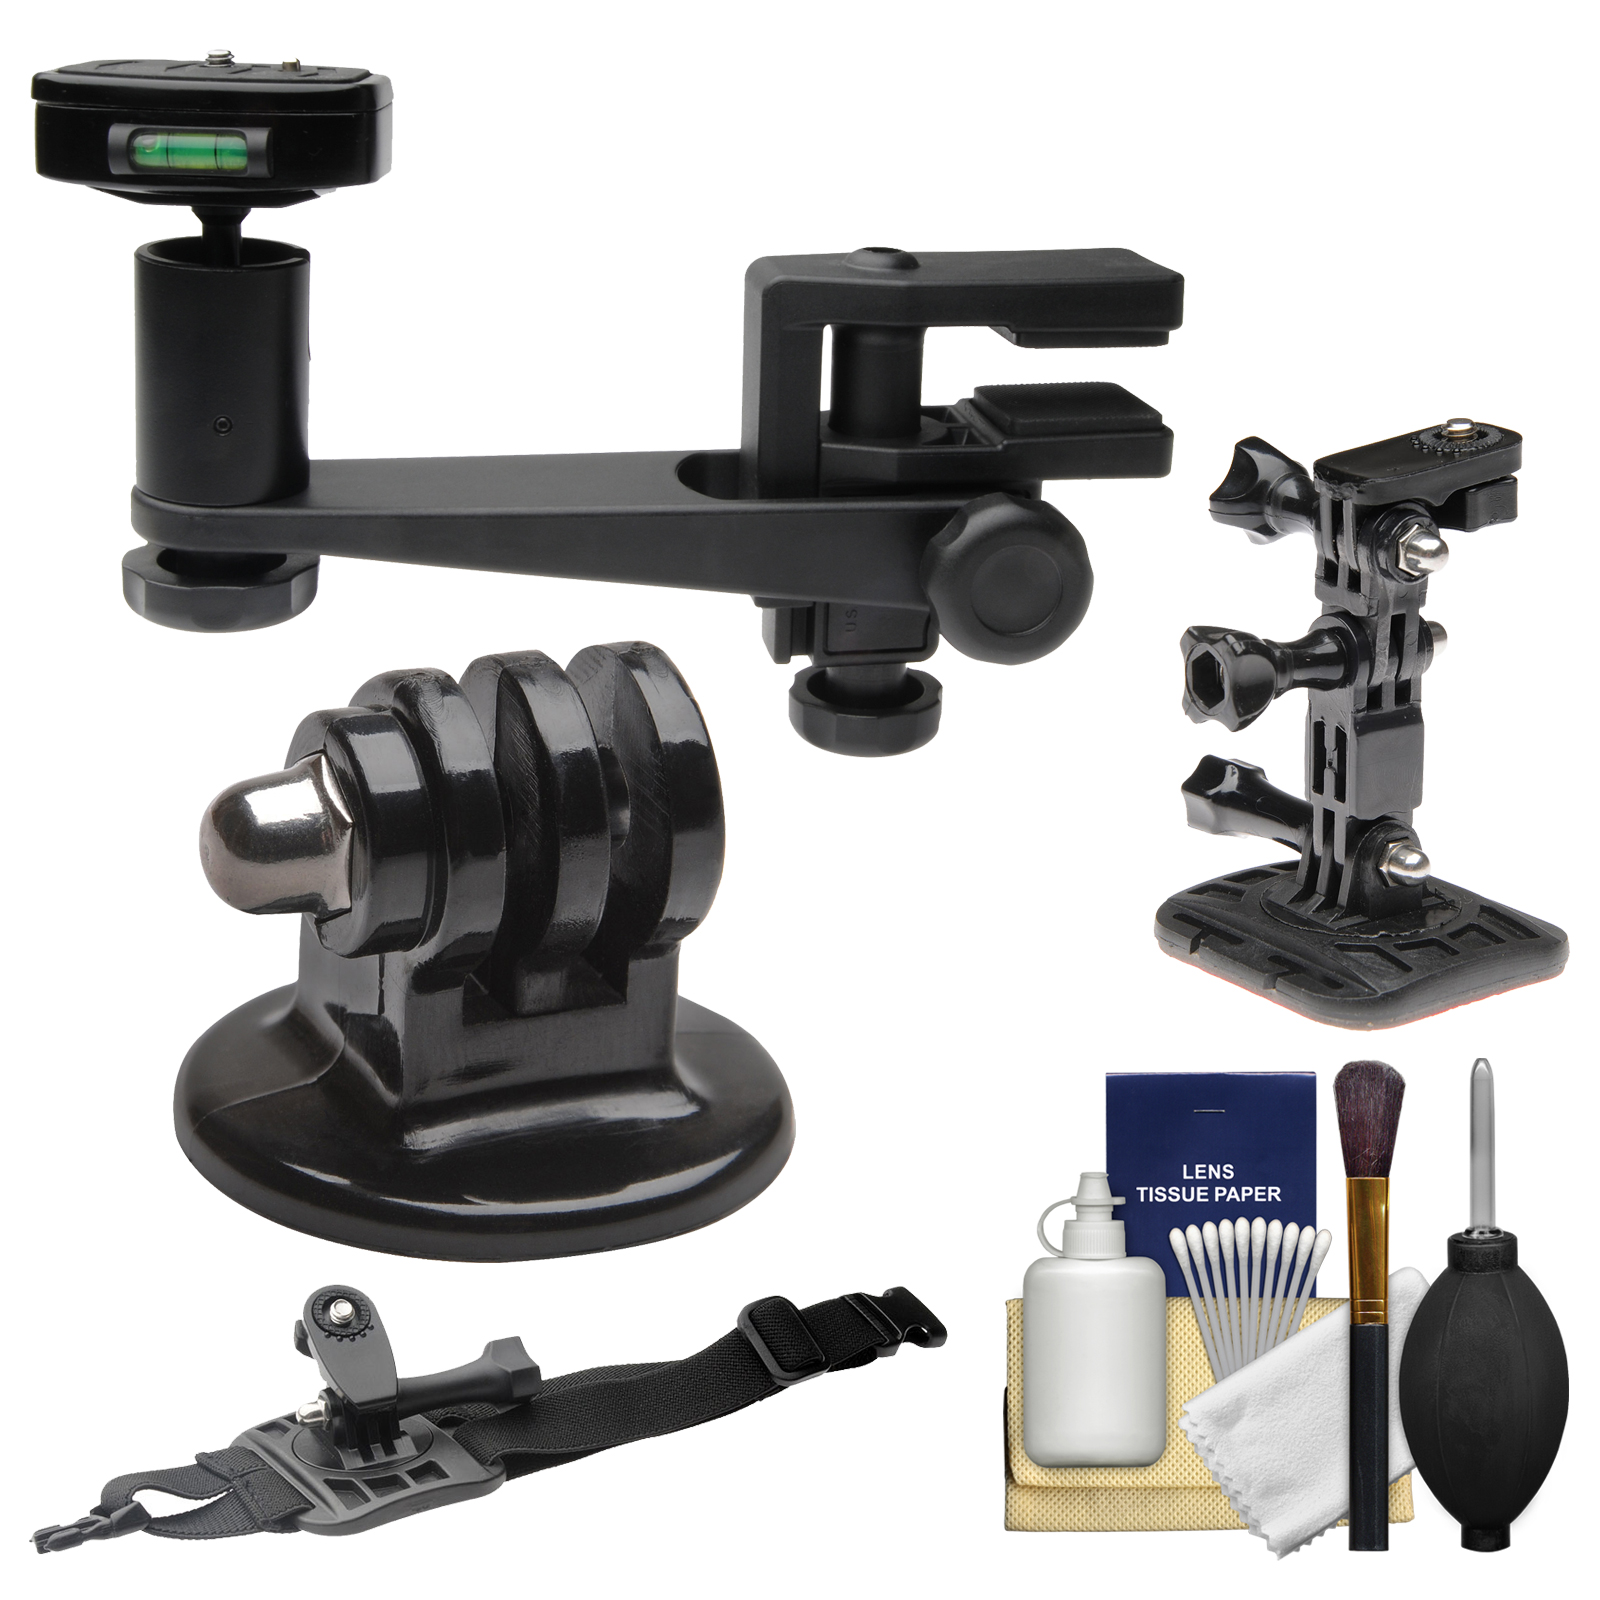 Makaw Video Perch Camera Mount Clamp with Ballhead & Quick Release + Tripod Adapter + Curved Helmet & Arm Mounts Kit for GoPro Hero 3 4 Action Camera